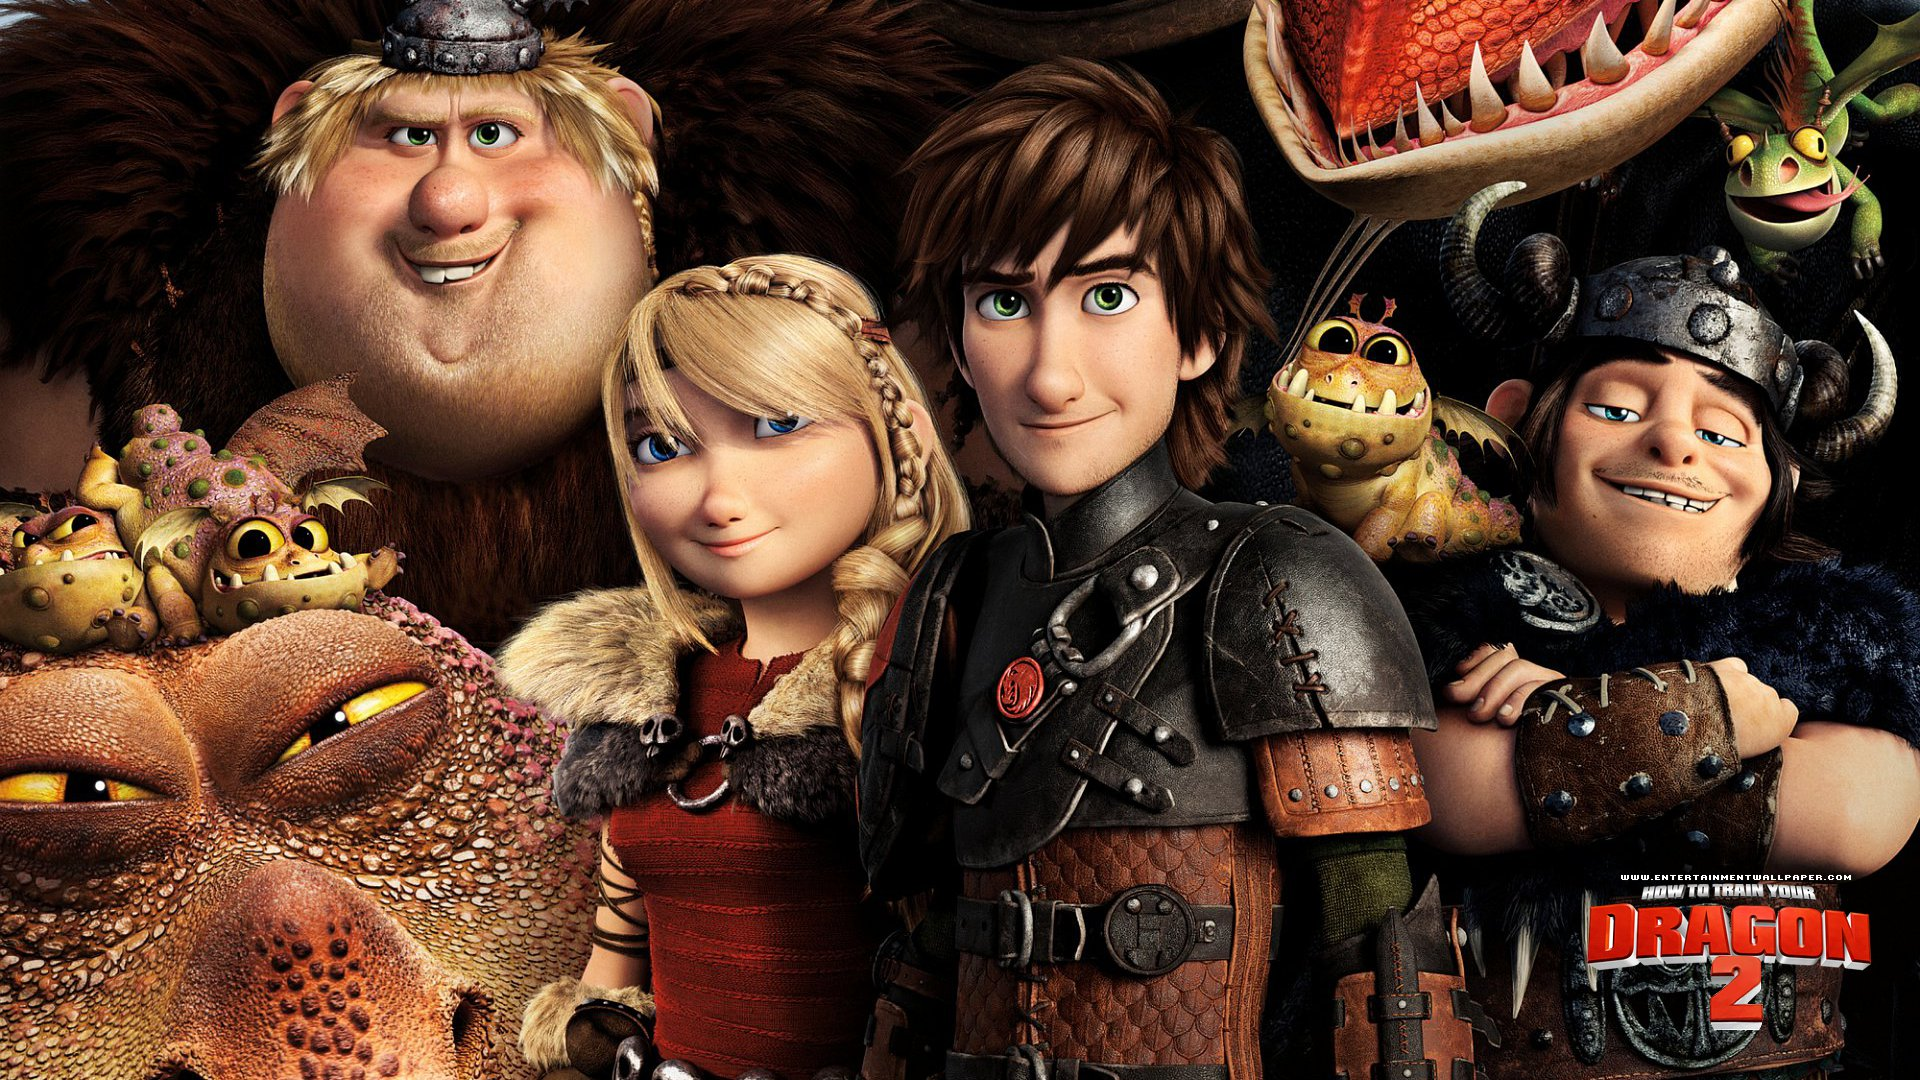 How to train your dragon 2 18 noset how to train your dragon 2 18 ccuart Gallery